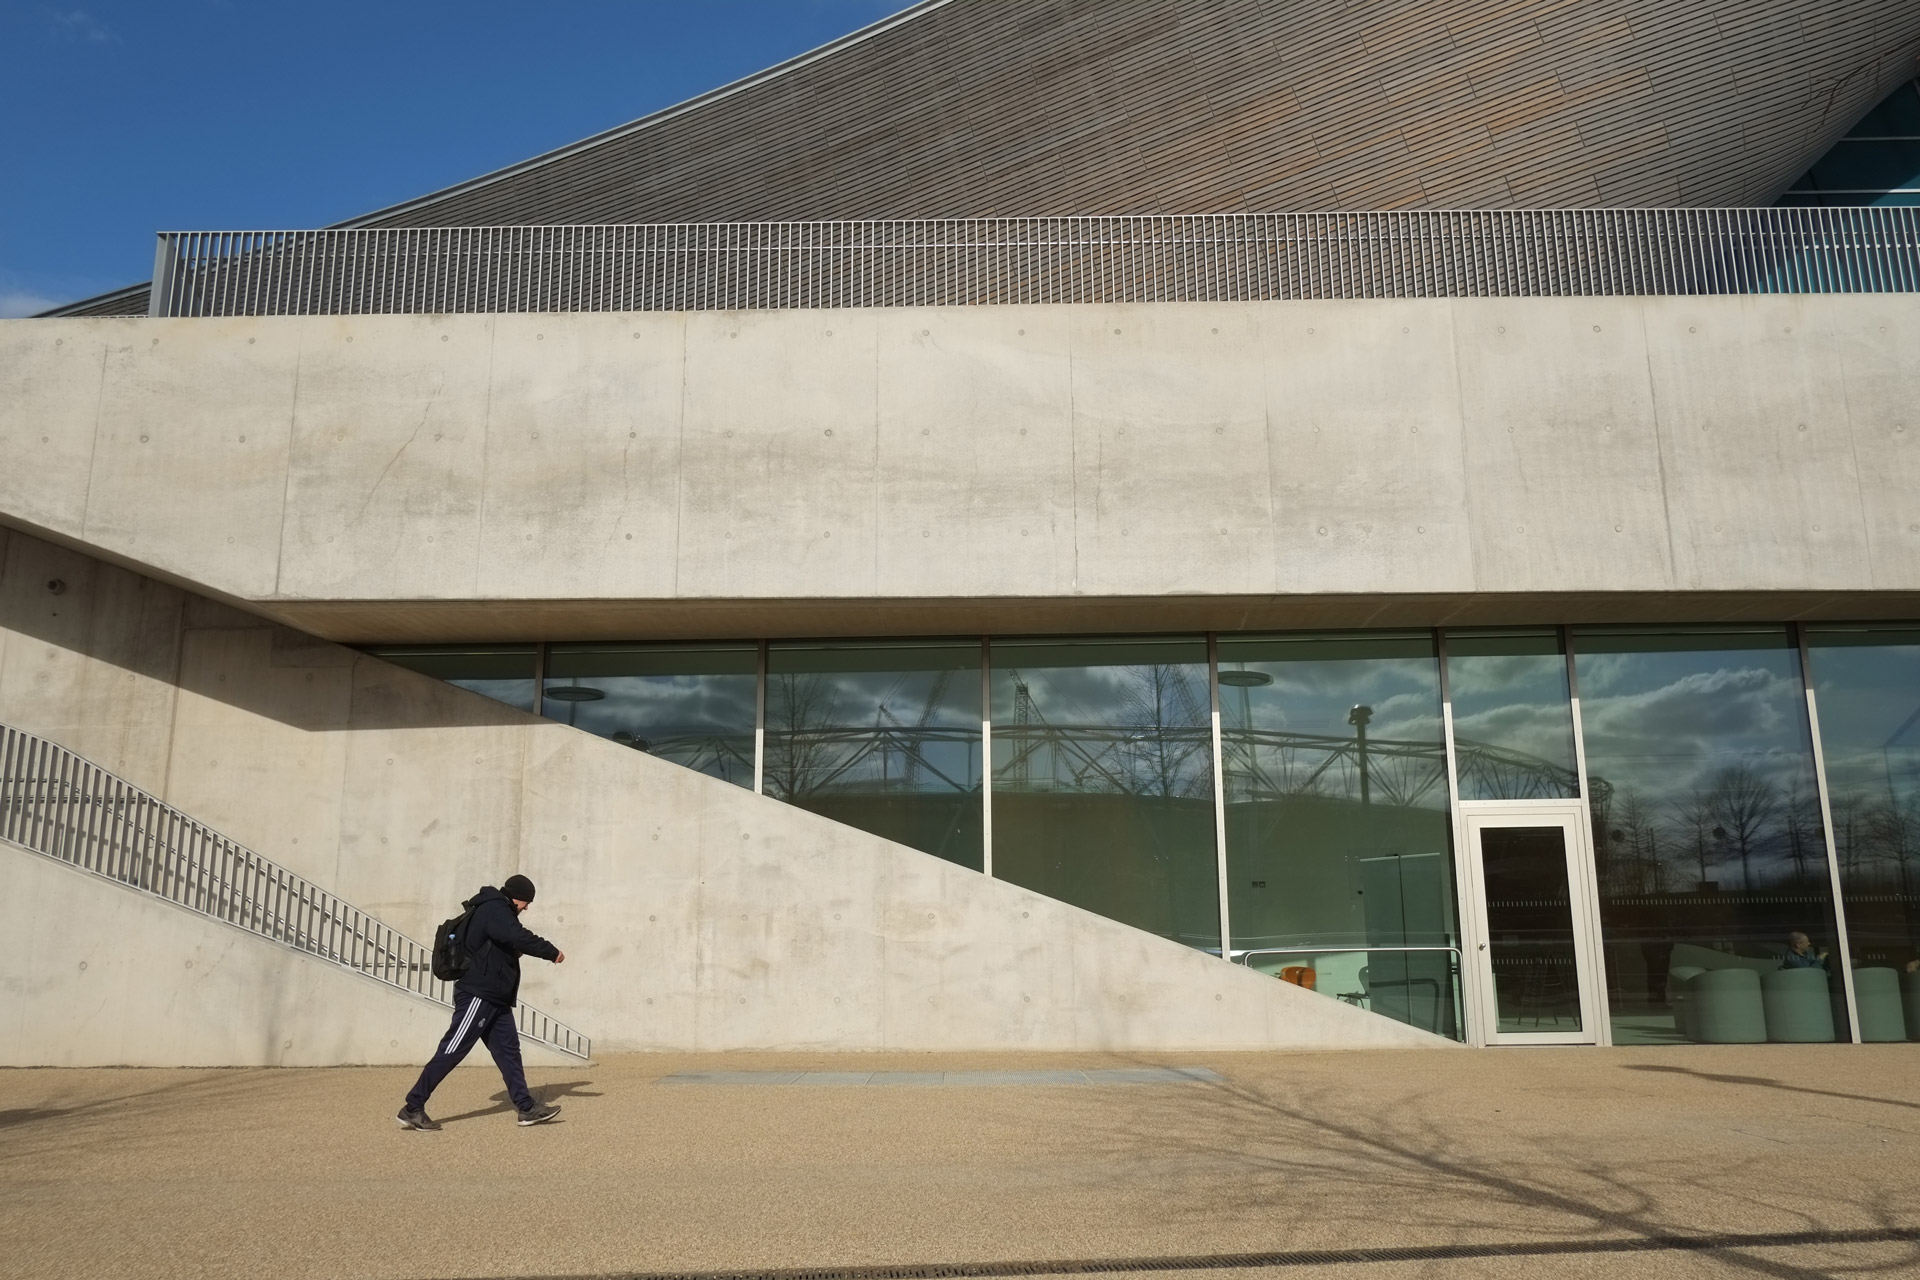 London Aquatics Centre (legacy mode), Public Entrance, March 2015.